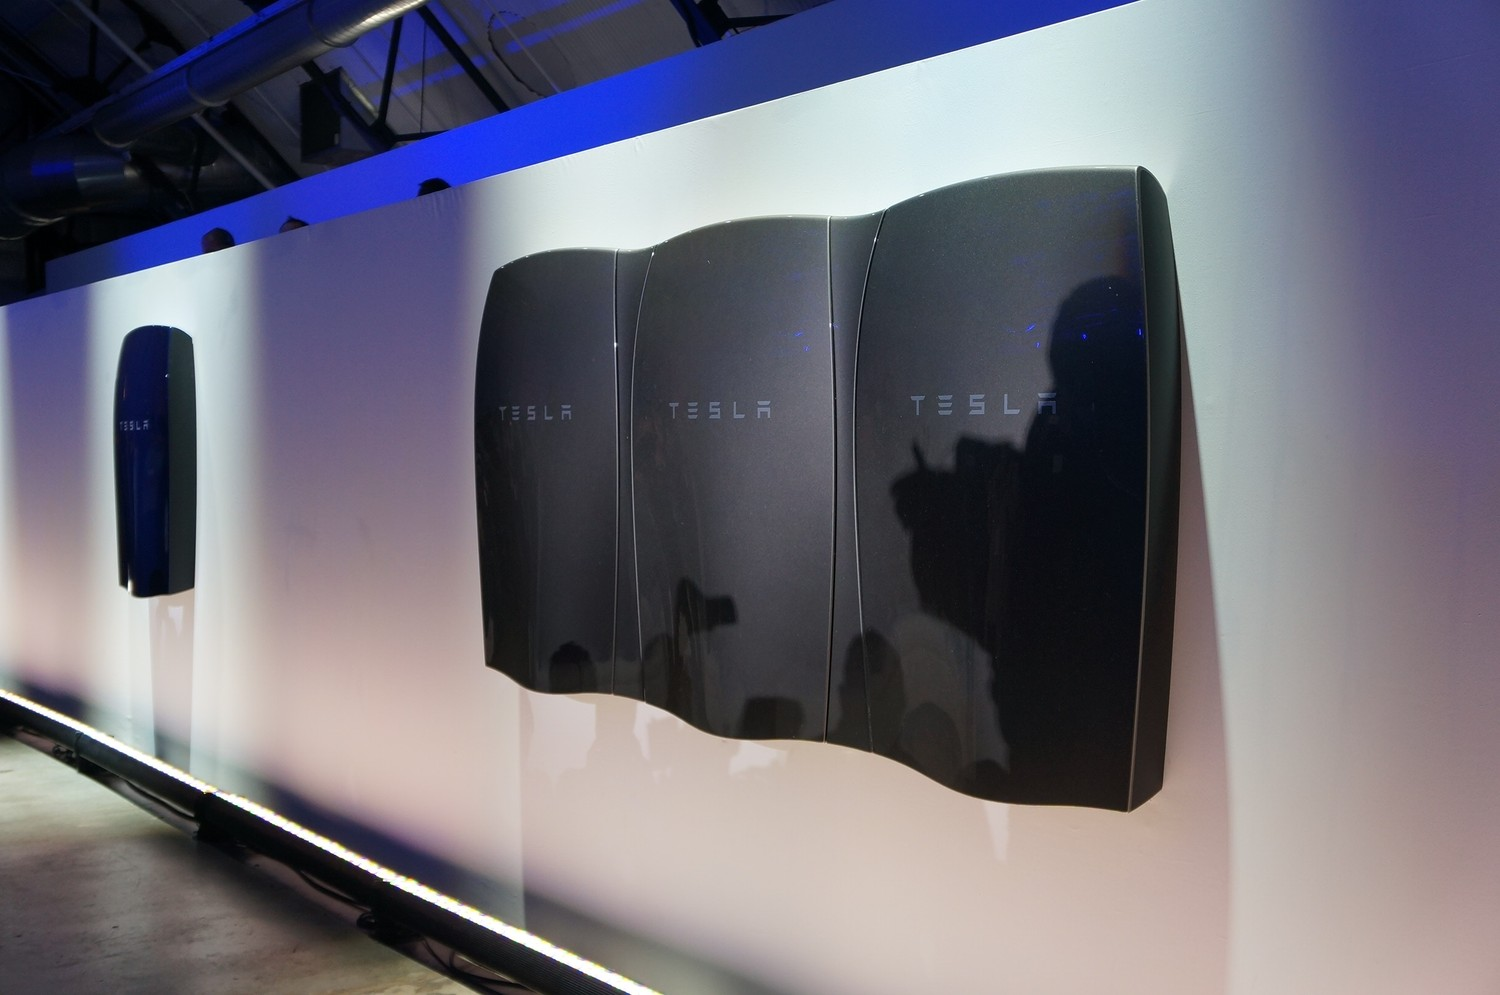 Tesla Powerwall: The future has arrived